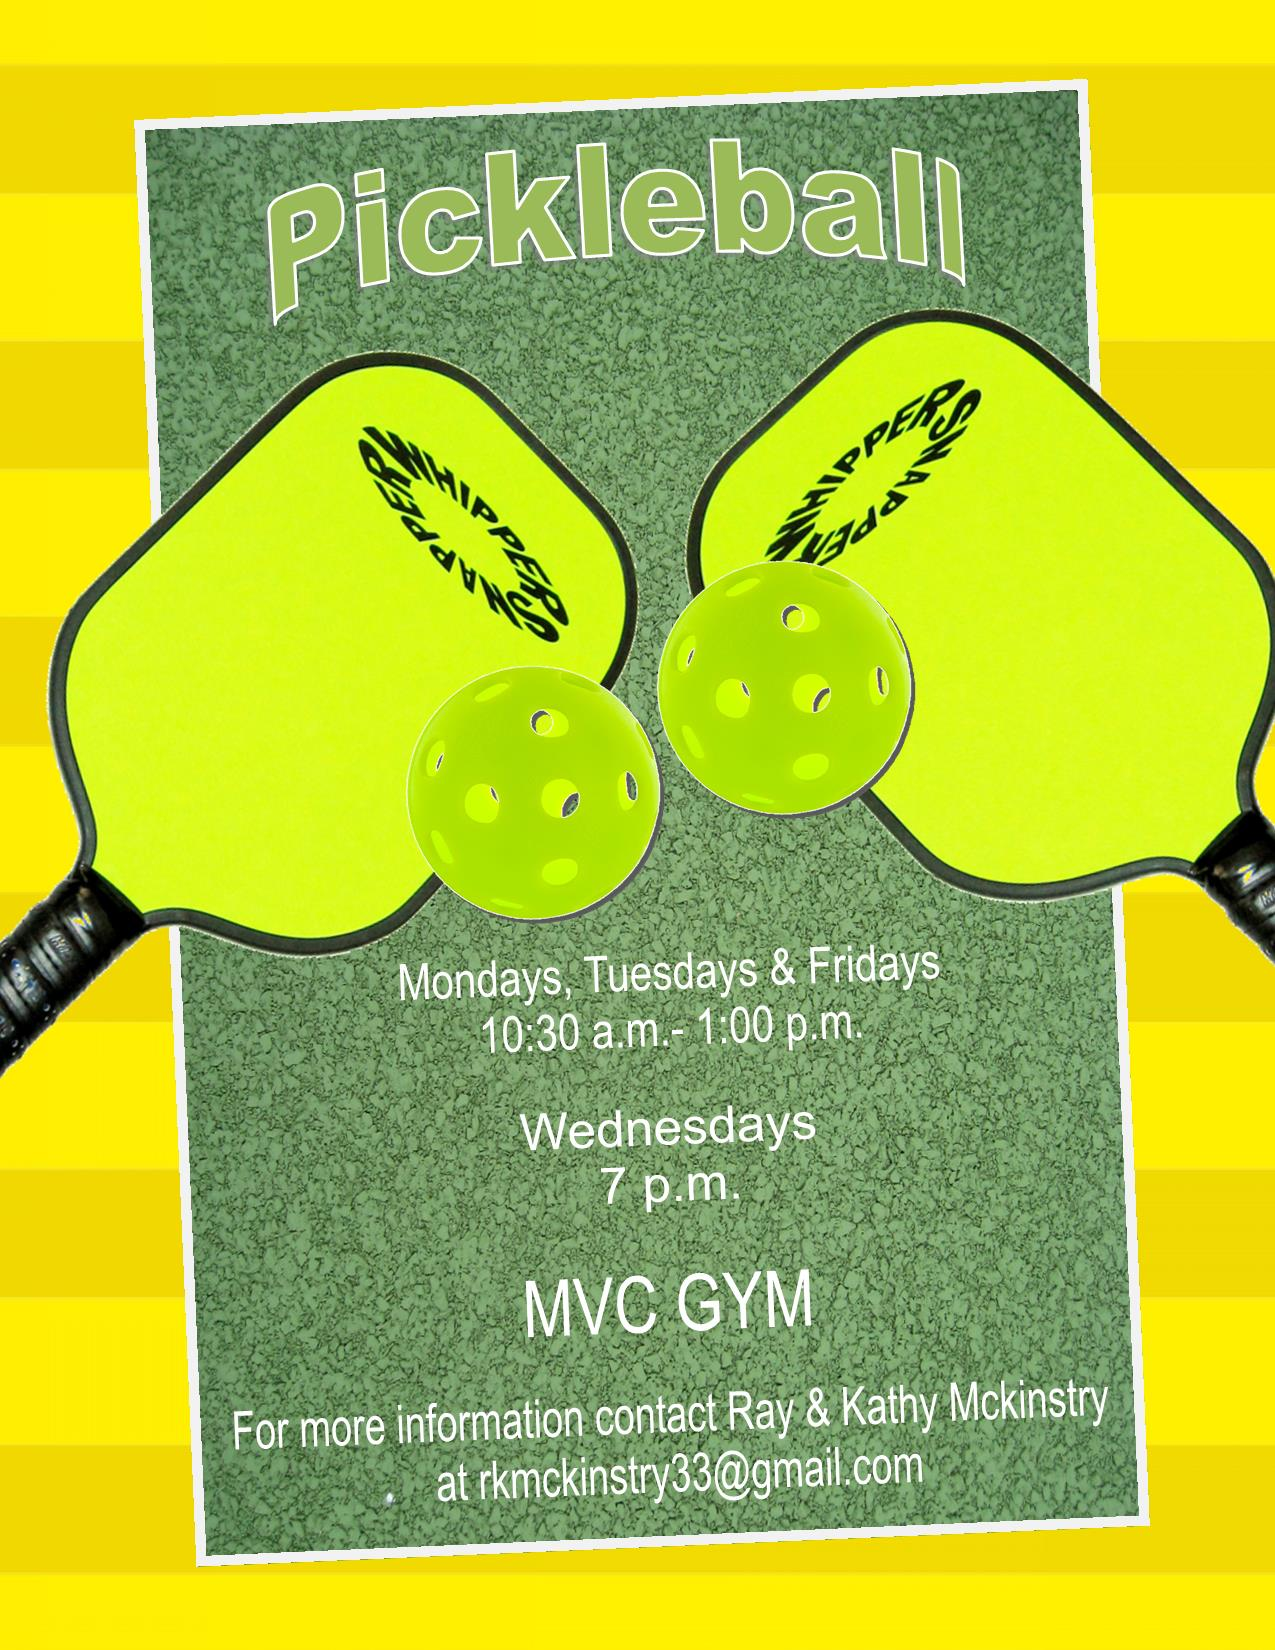 Pickleball Tuesdays